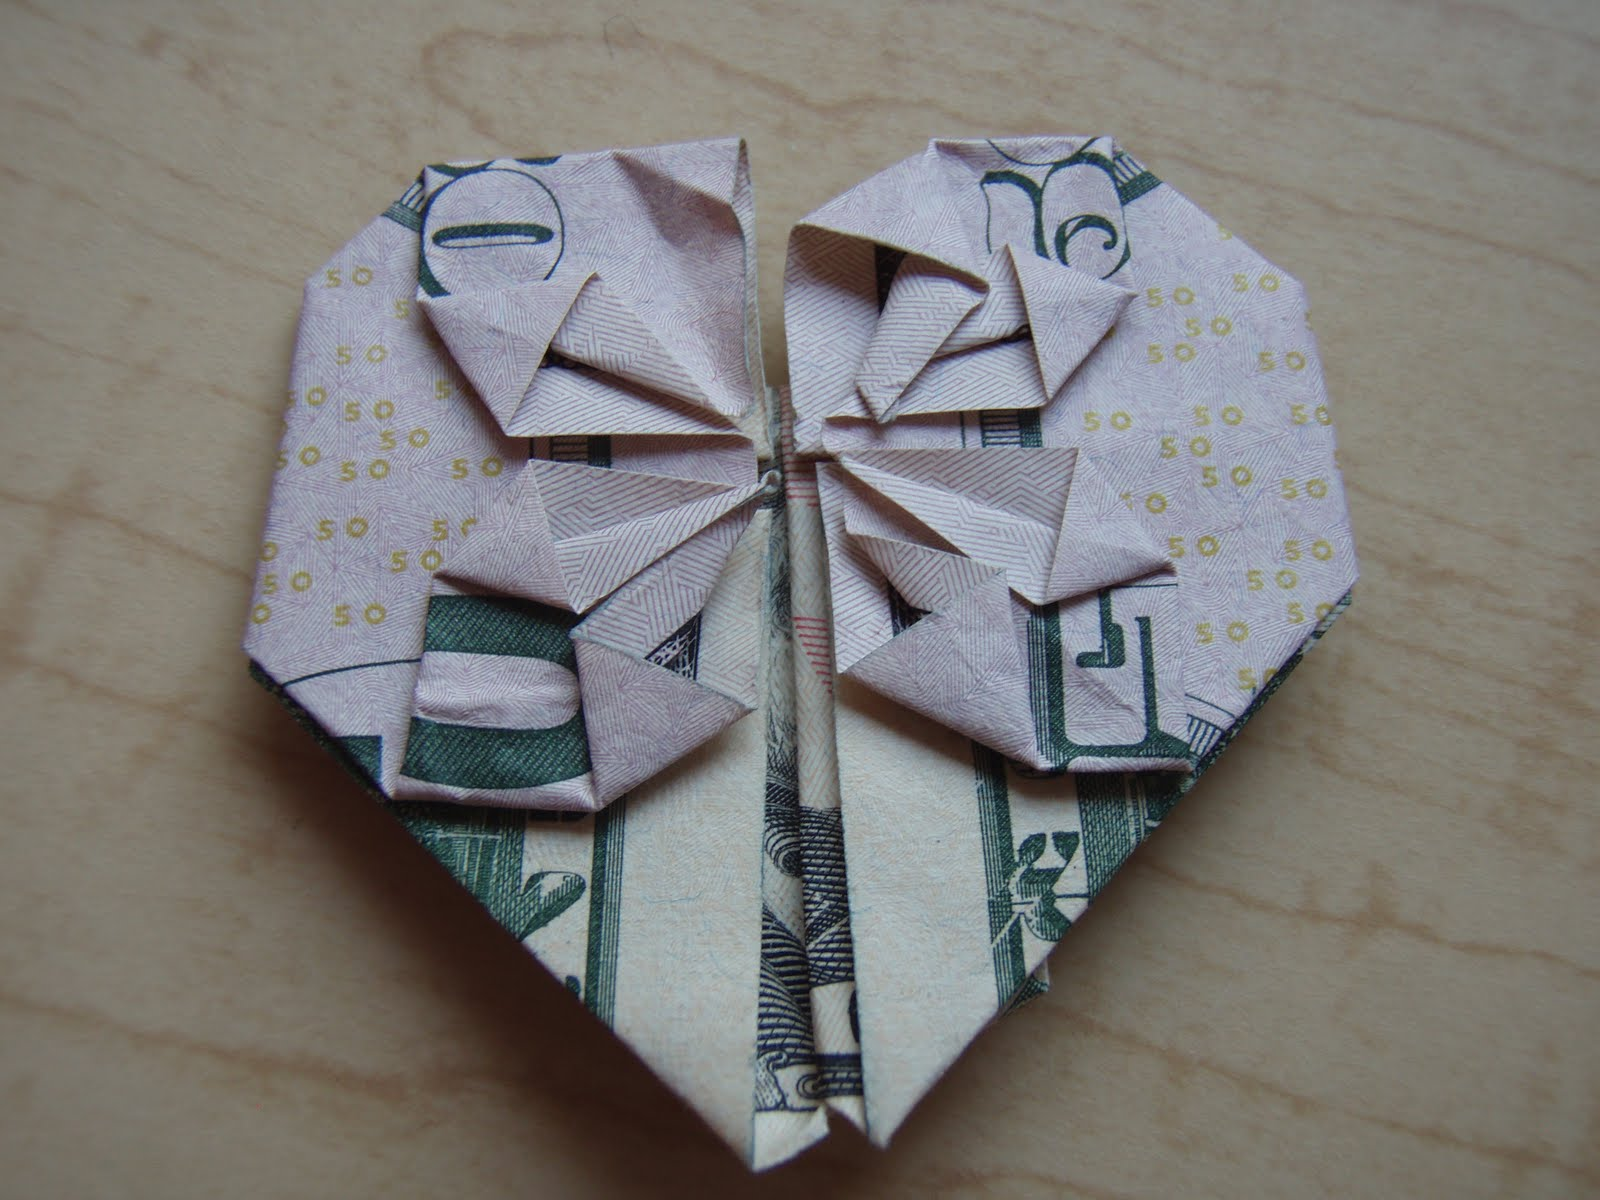 Outside the box!: My Origami Heart - photo#29